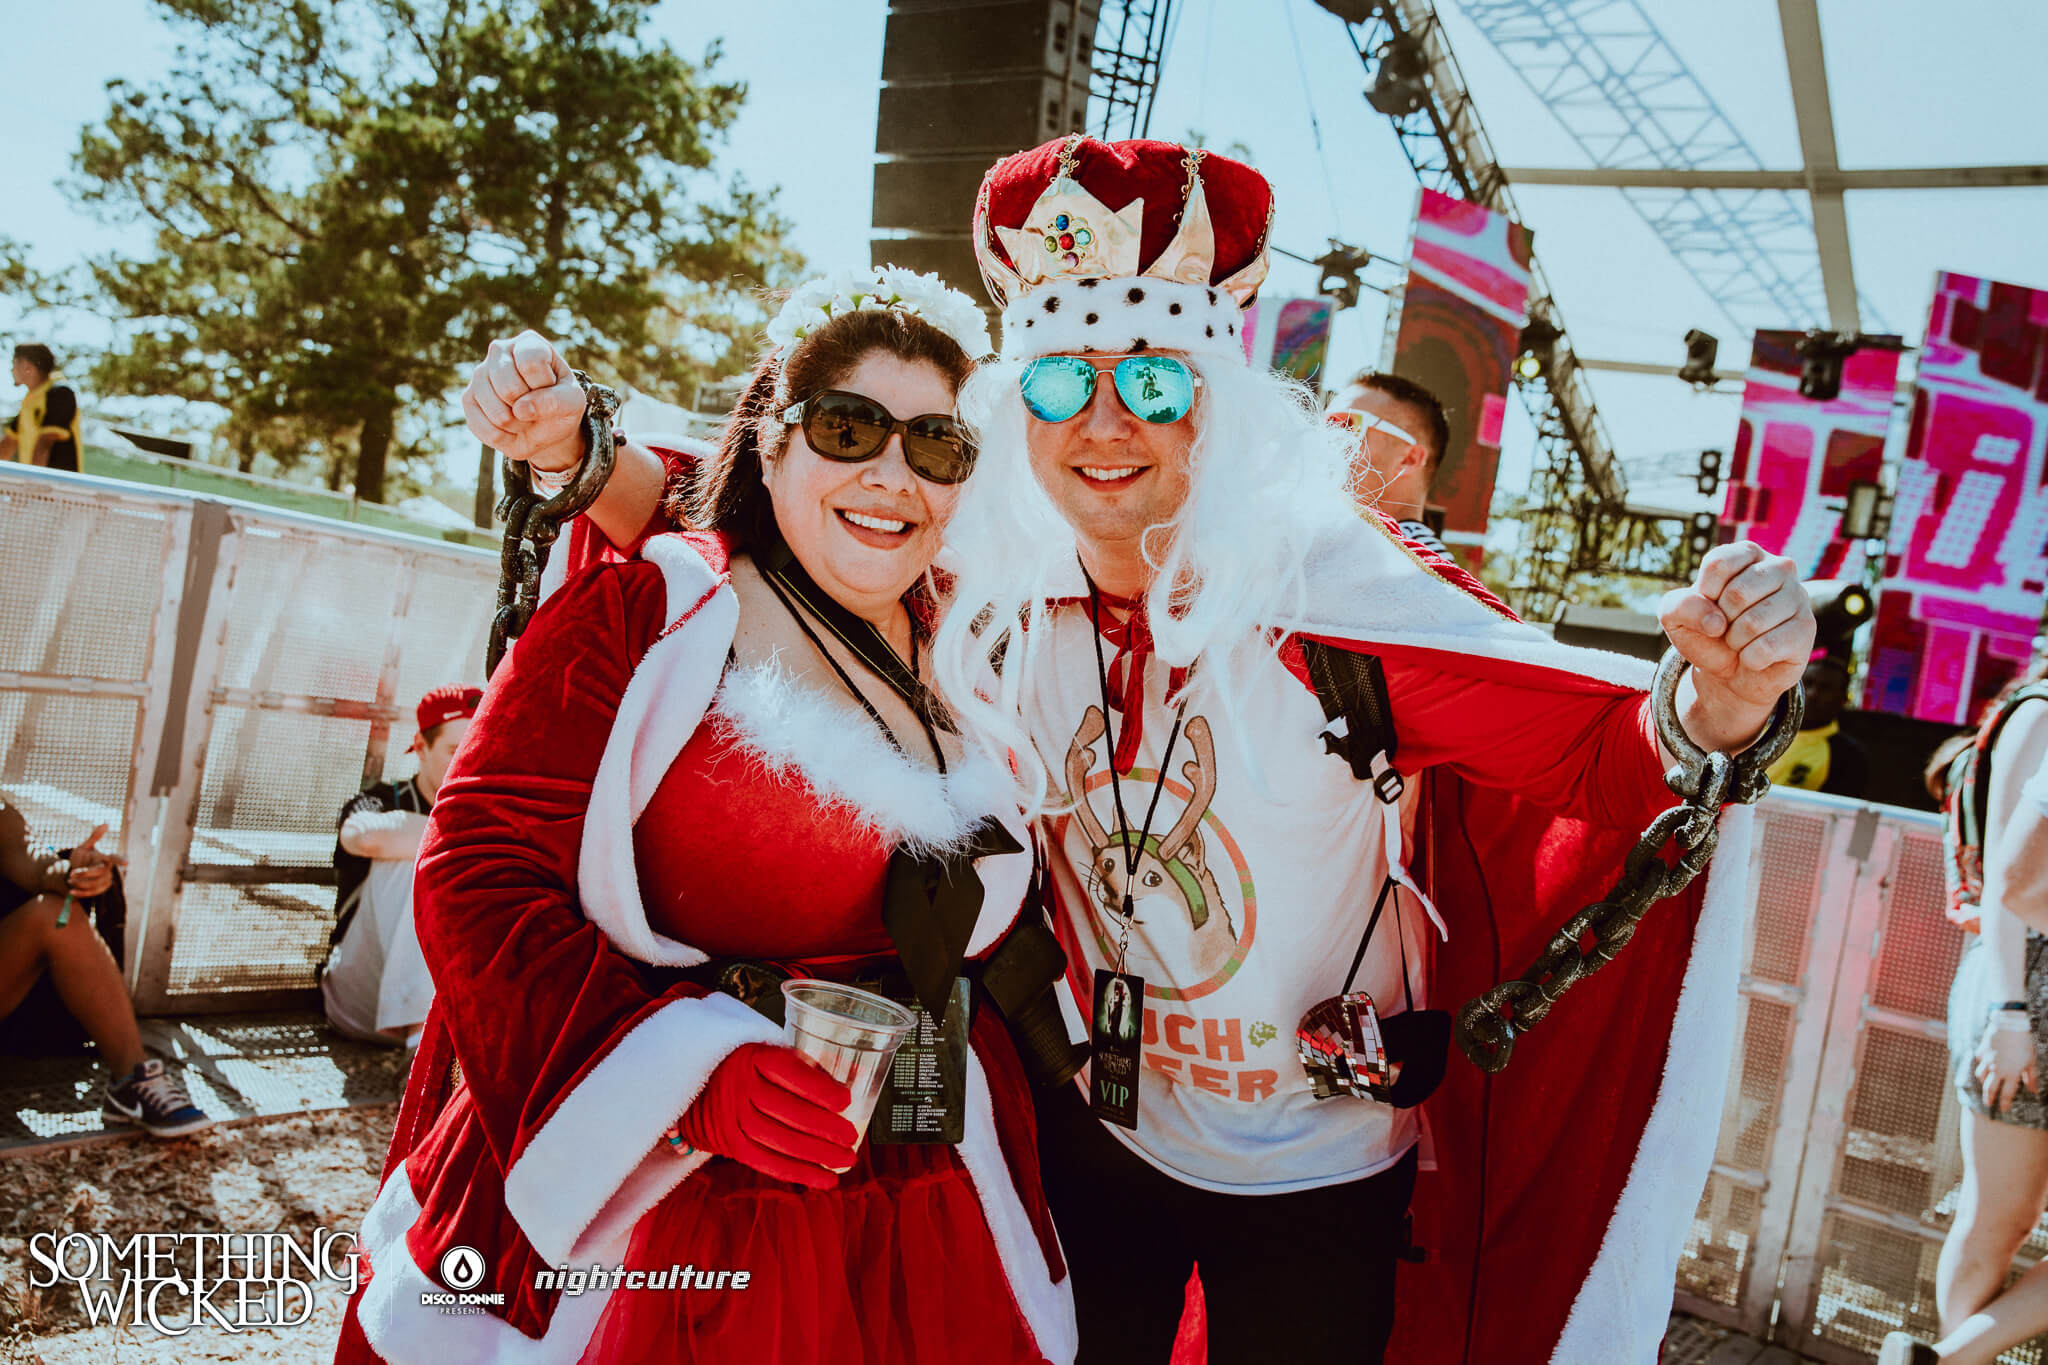 Fans in costume at Something Wicked. Photo by Julian Bajsel.